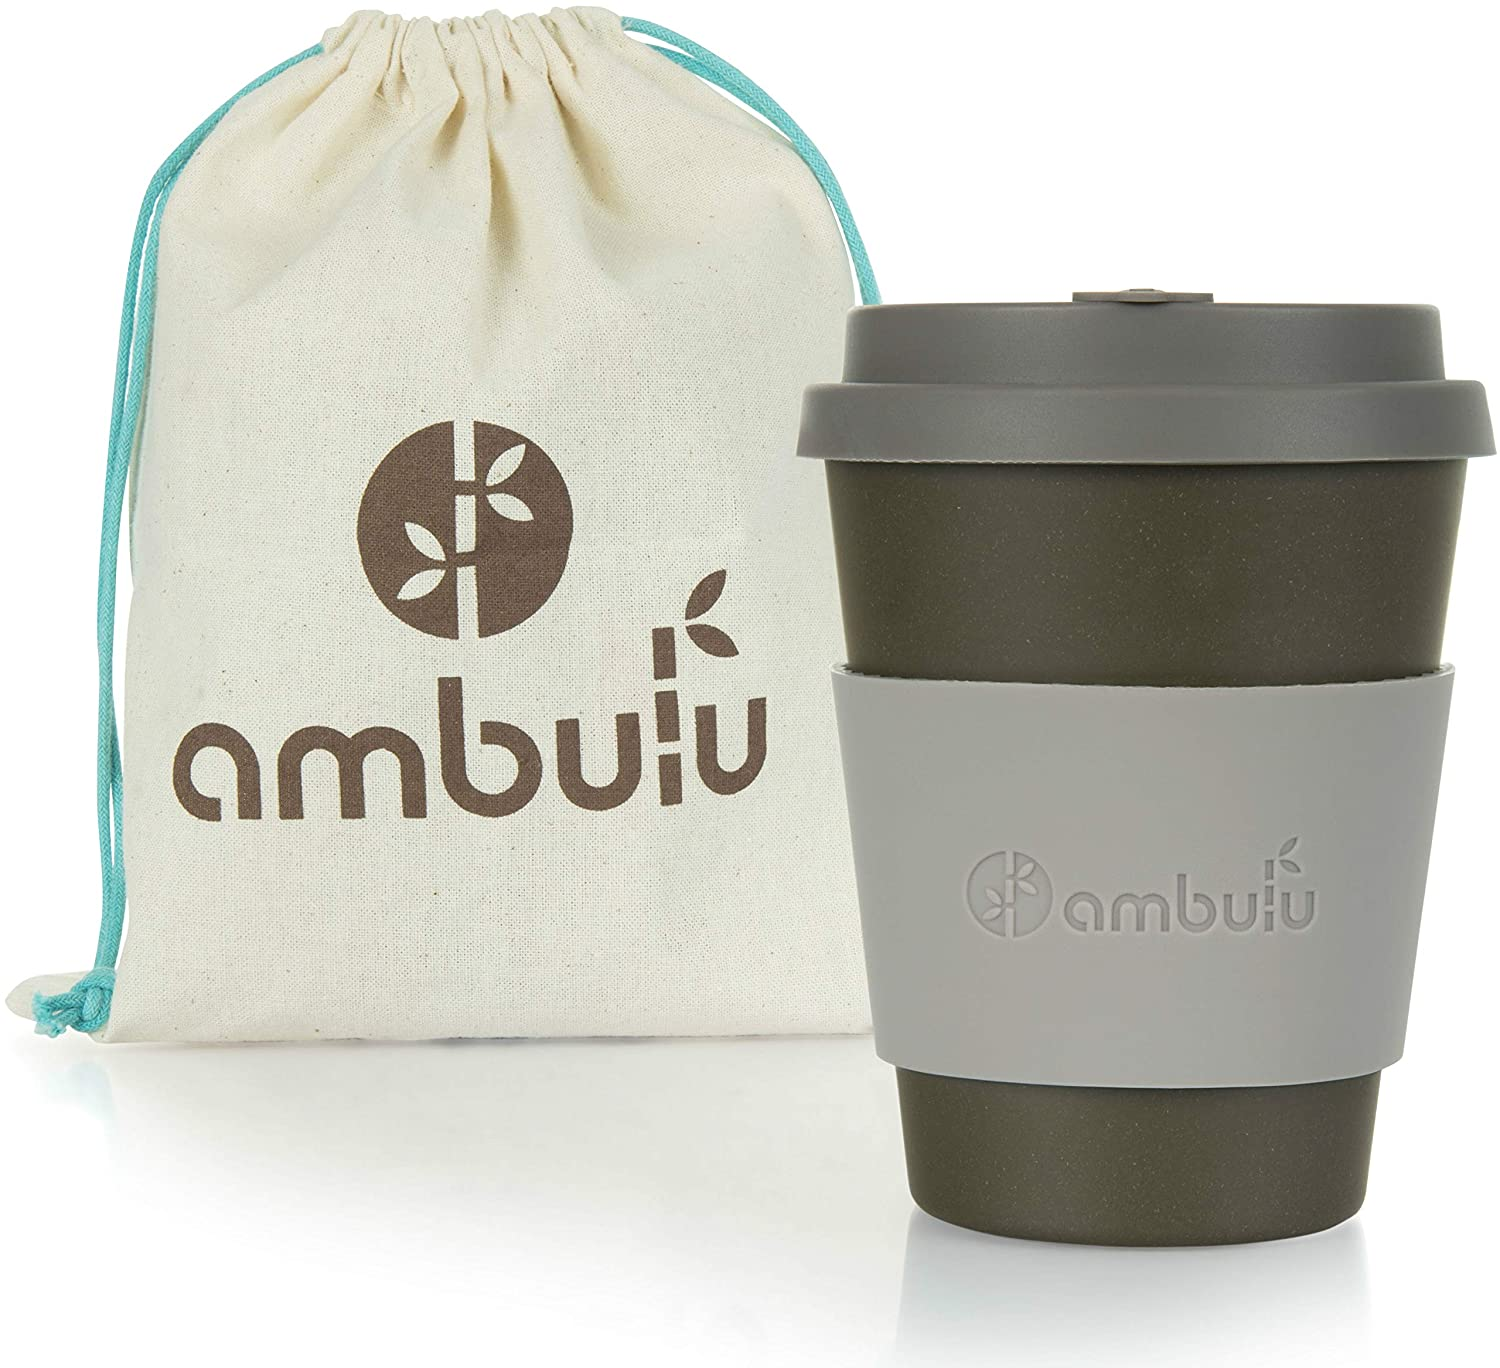 Ambulu Reusable Coffee Cup for Travel and Takeaway 350ml | Portable Bamboo Mug with Lid, 2 Sleeves, Carry Bag | Plastic and BPA Free | Dishwasher Safe Eco Cups 12oz